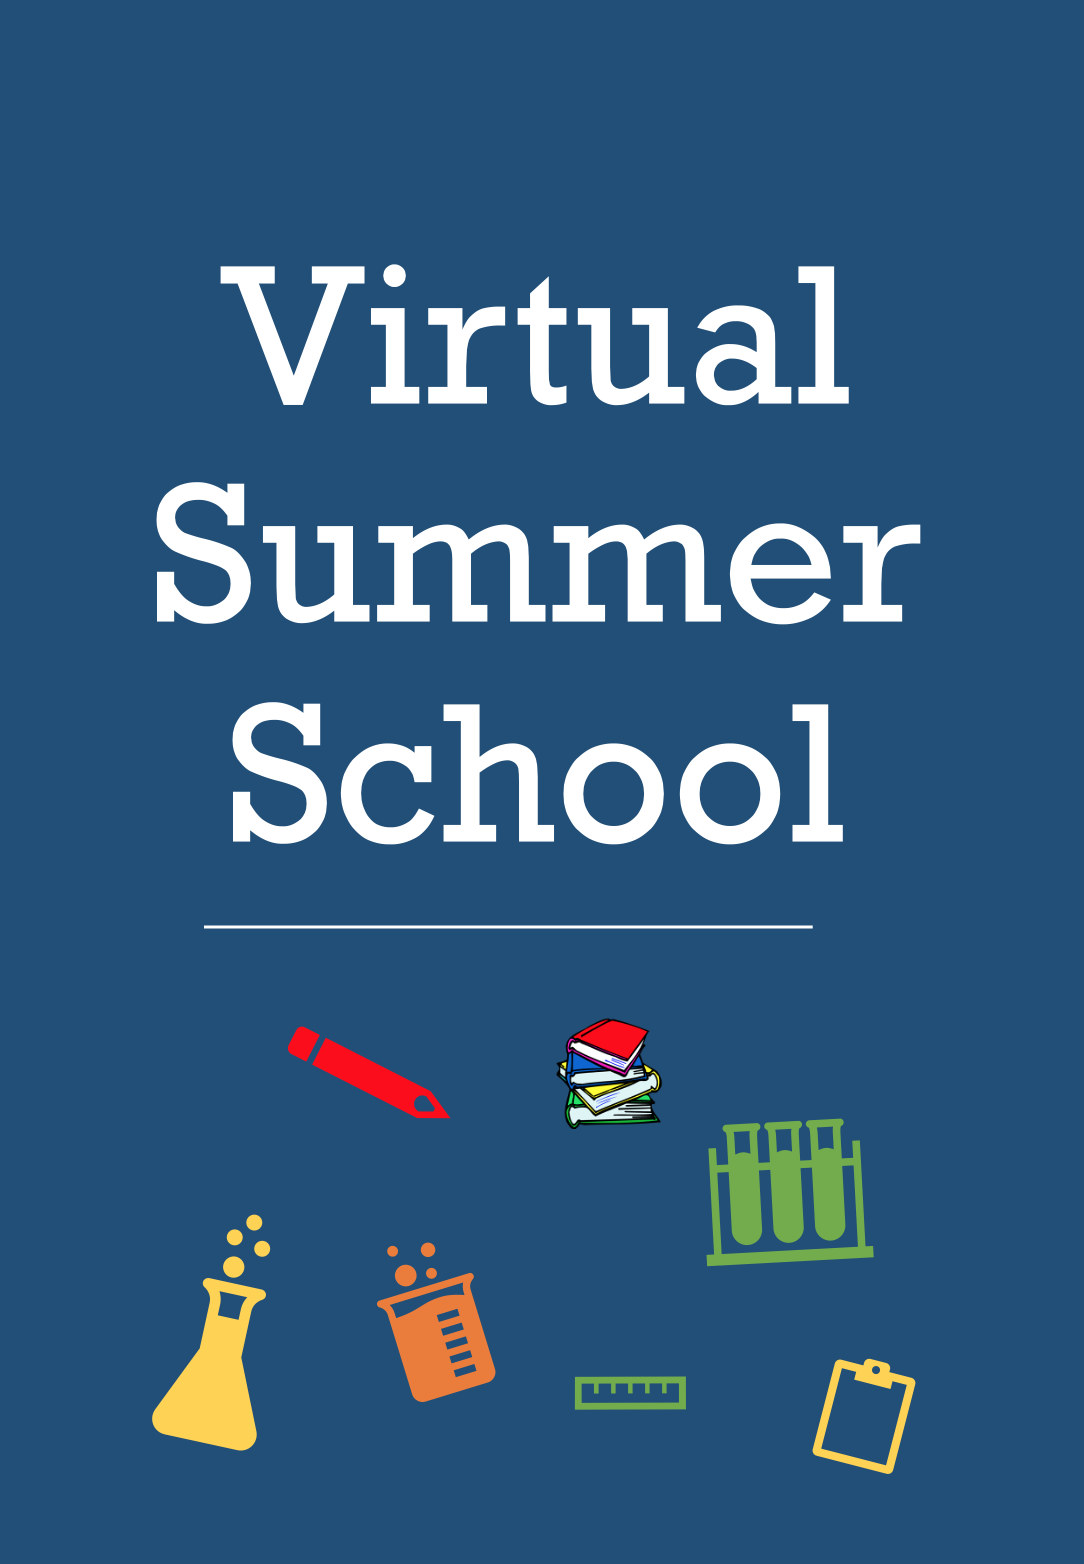 This is the image for the news article titled CCPS Virtual Summer School